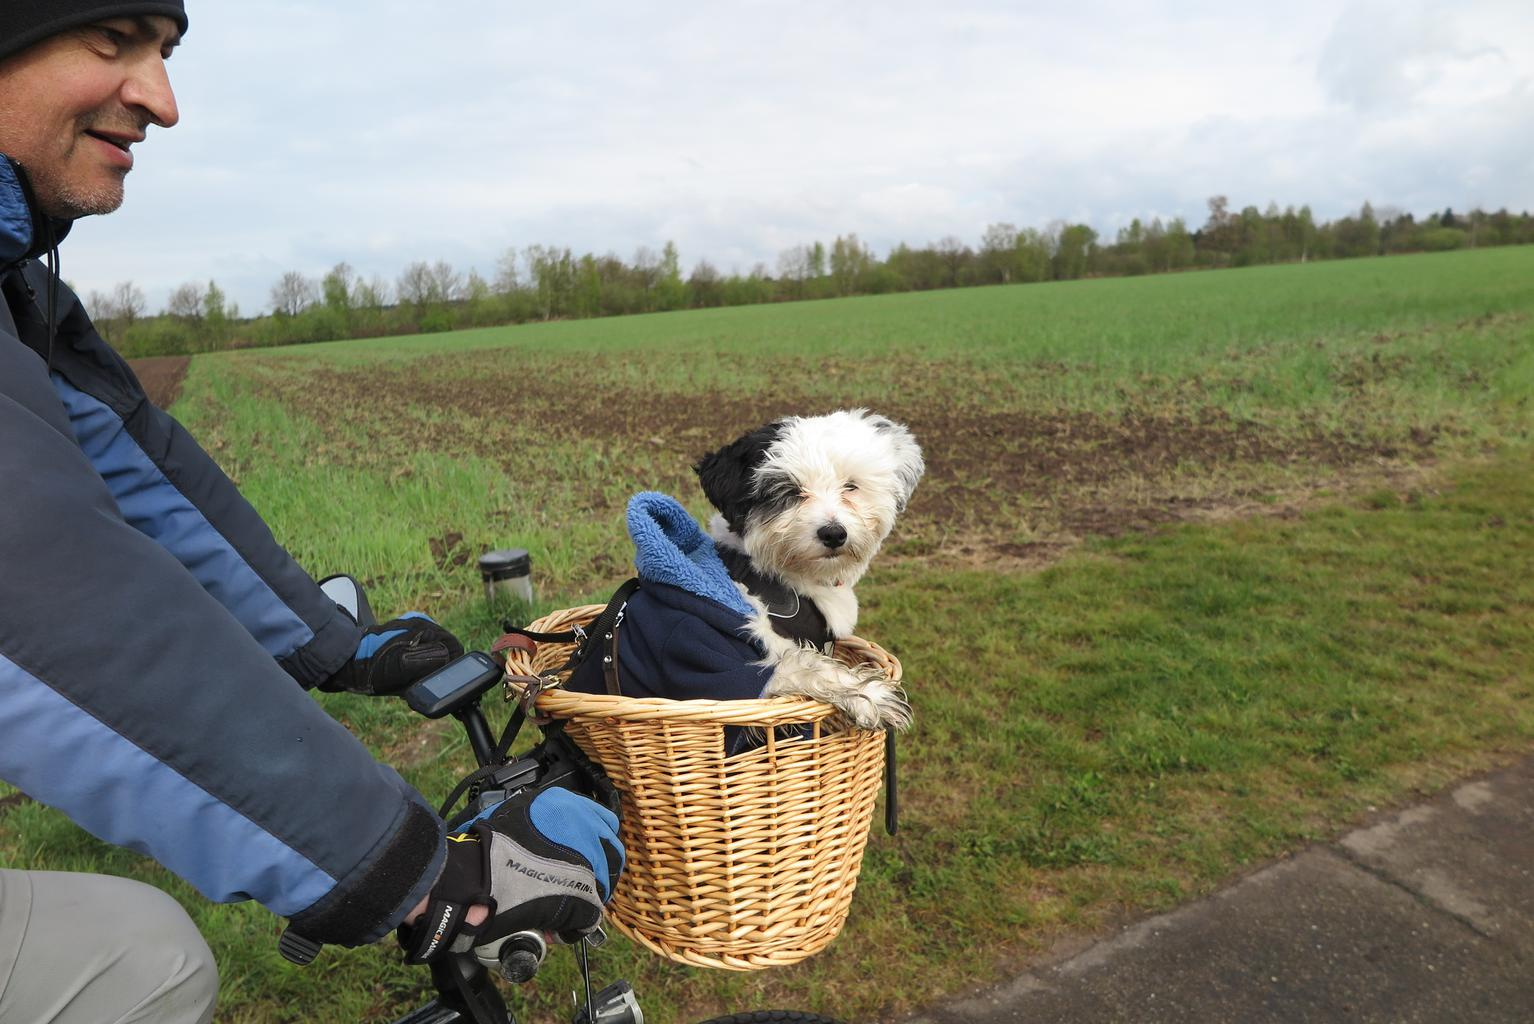 Rocky enjoying a biking trip with John. Tags: bike cute dog